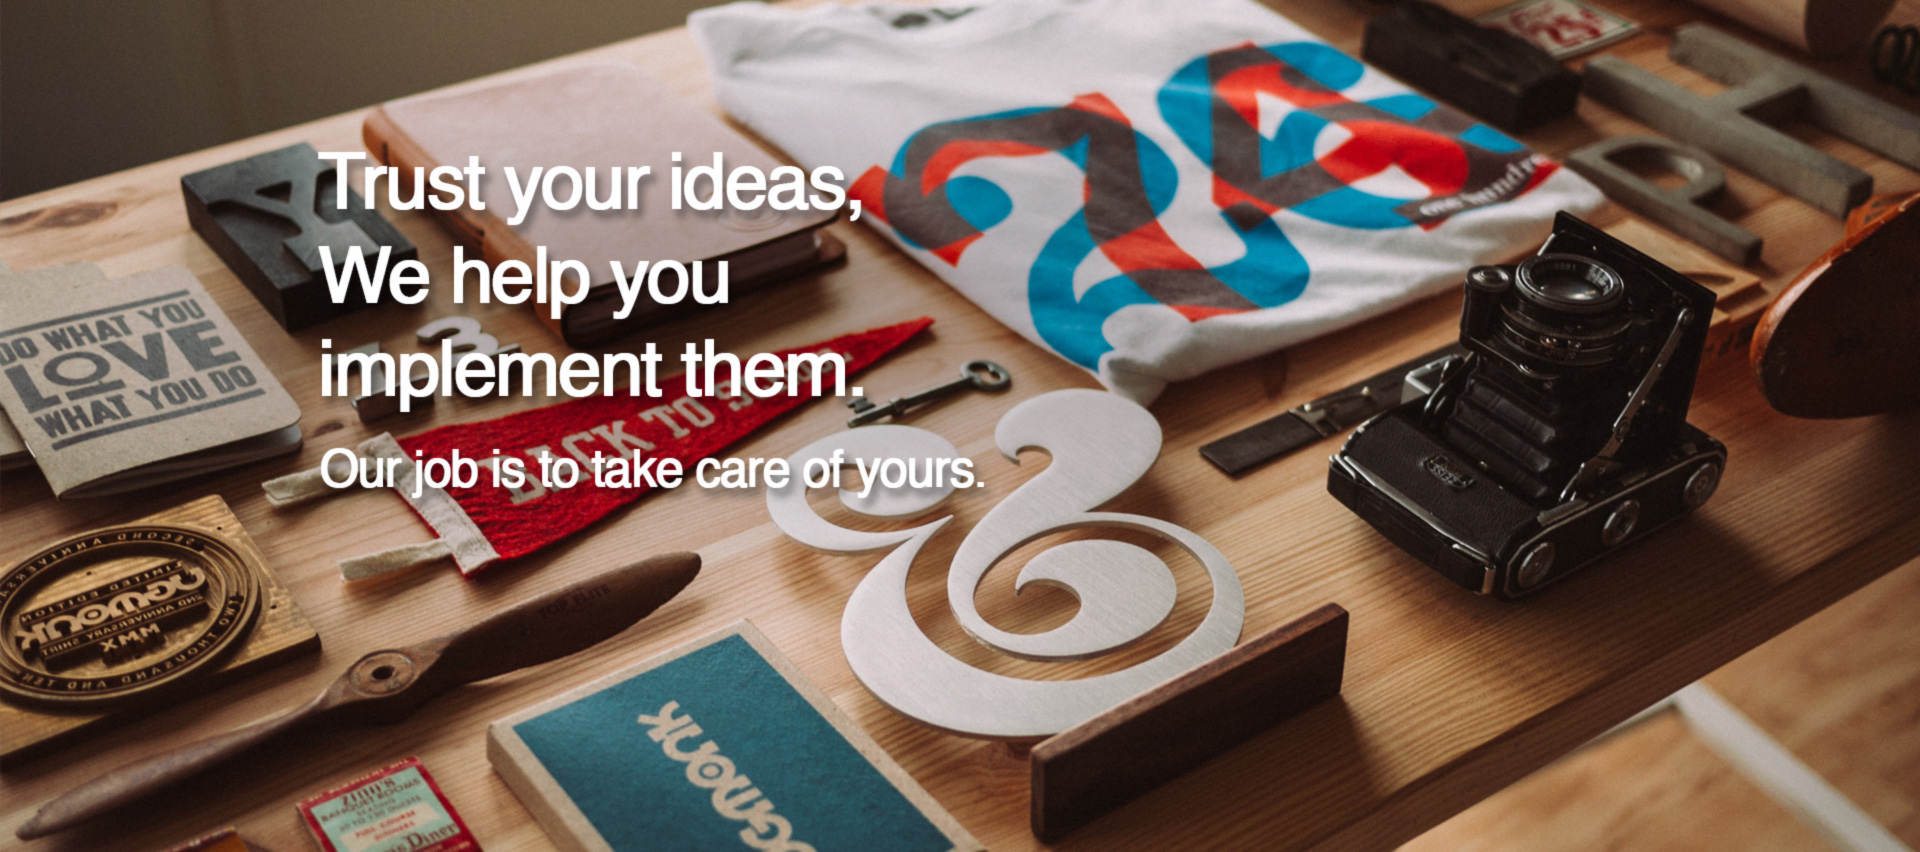 Trust your ideas, We help you implement them.